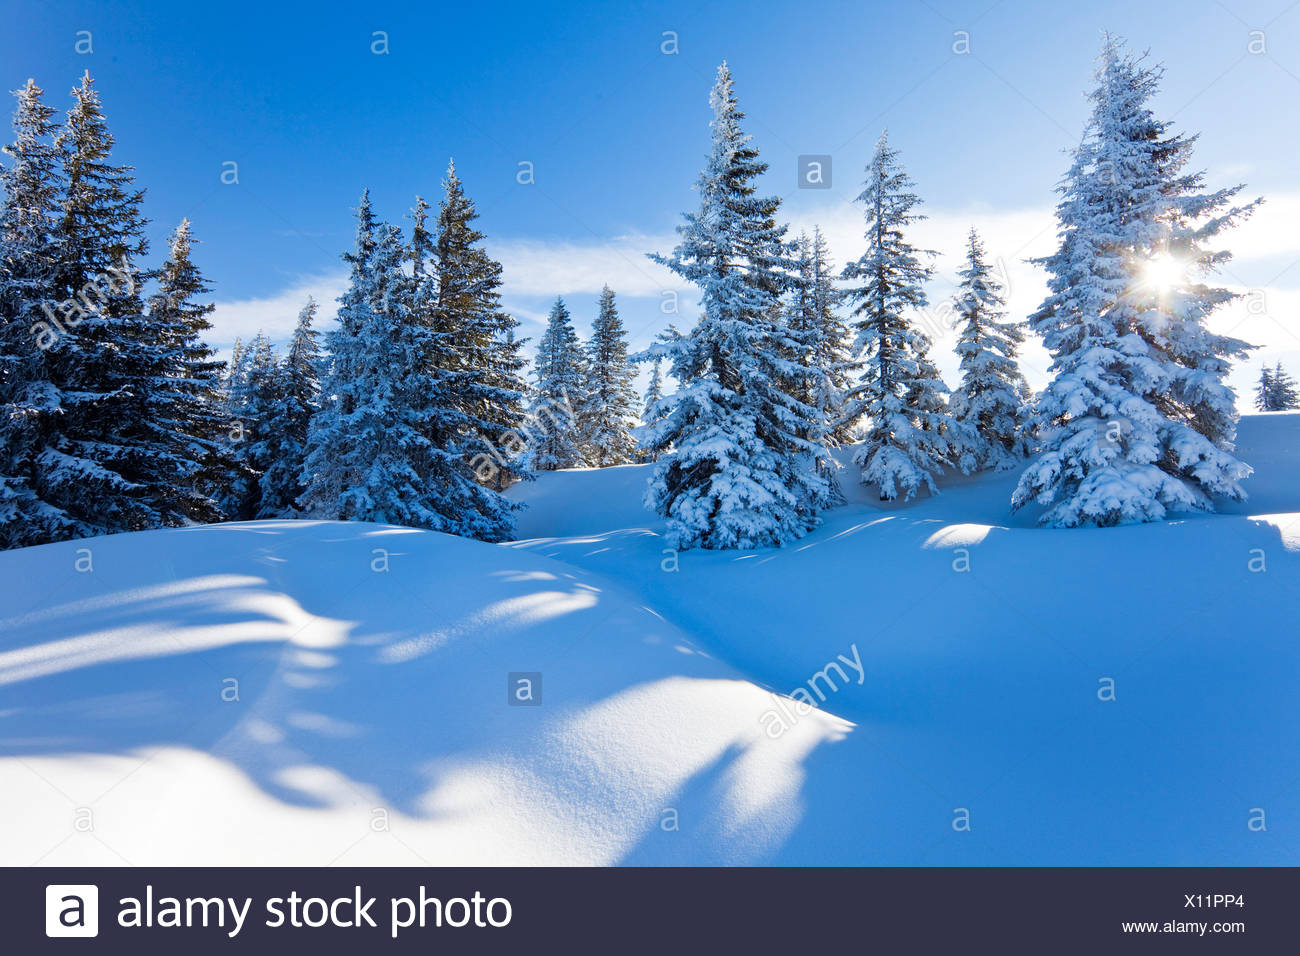 Snow-covered spruce trees, Berchtesgaden Alps, Muehlbach, Austria Stock Photo